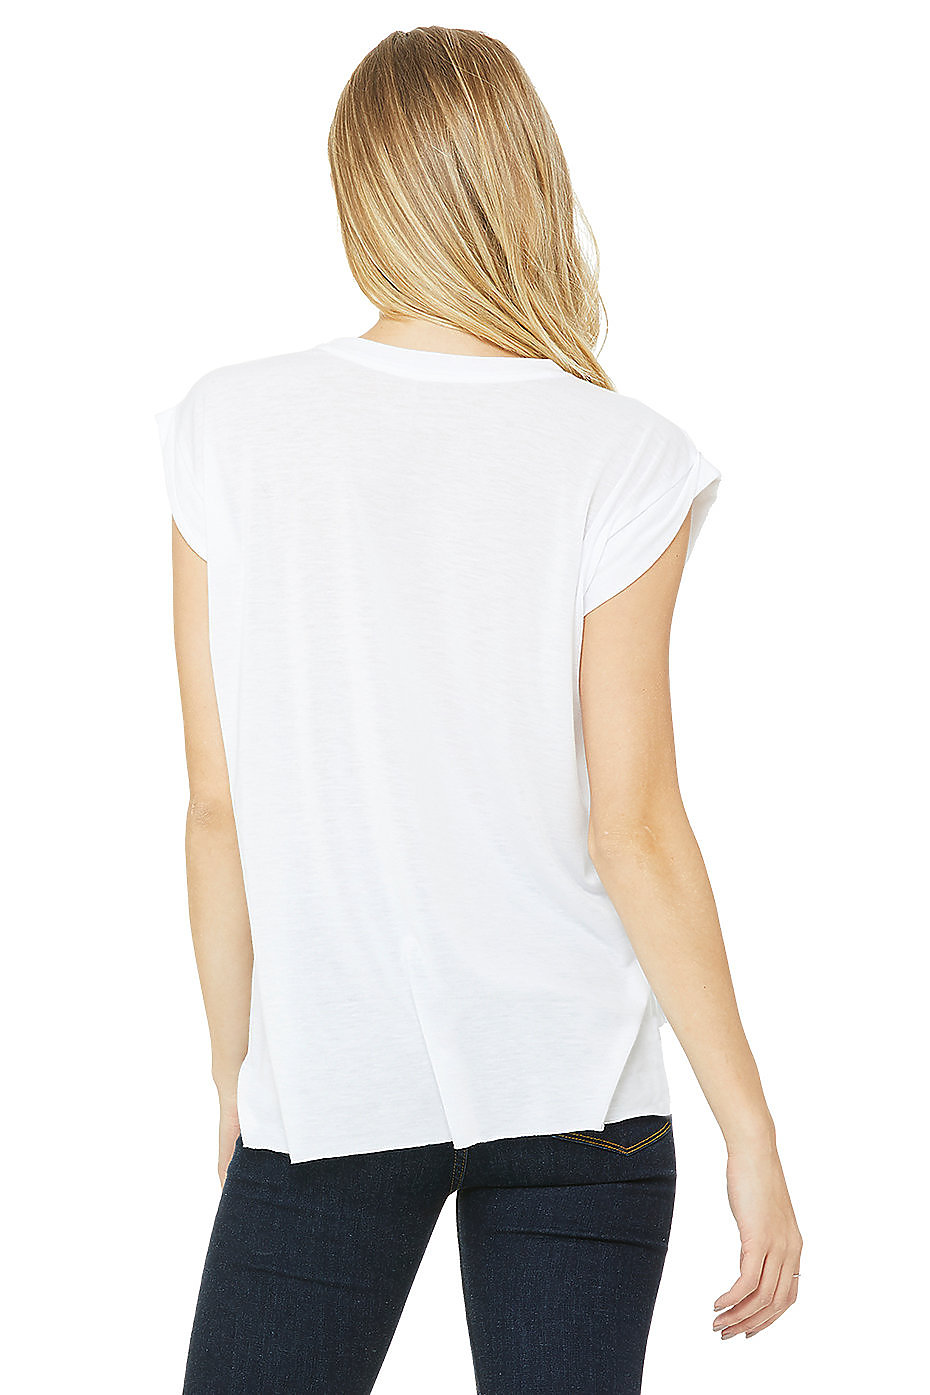 3e9f4209 Wholesale T Shirts | Womens Muscle Tee | Womens Wholesale Clothing ...